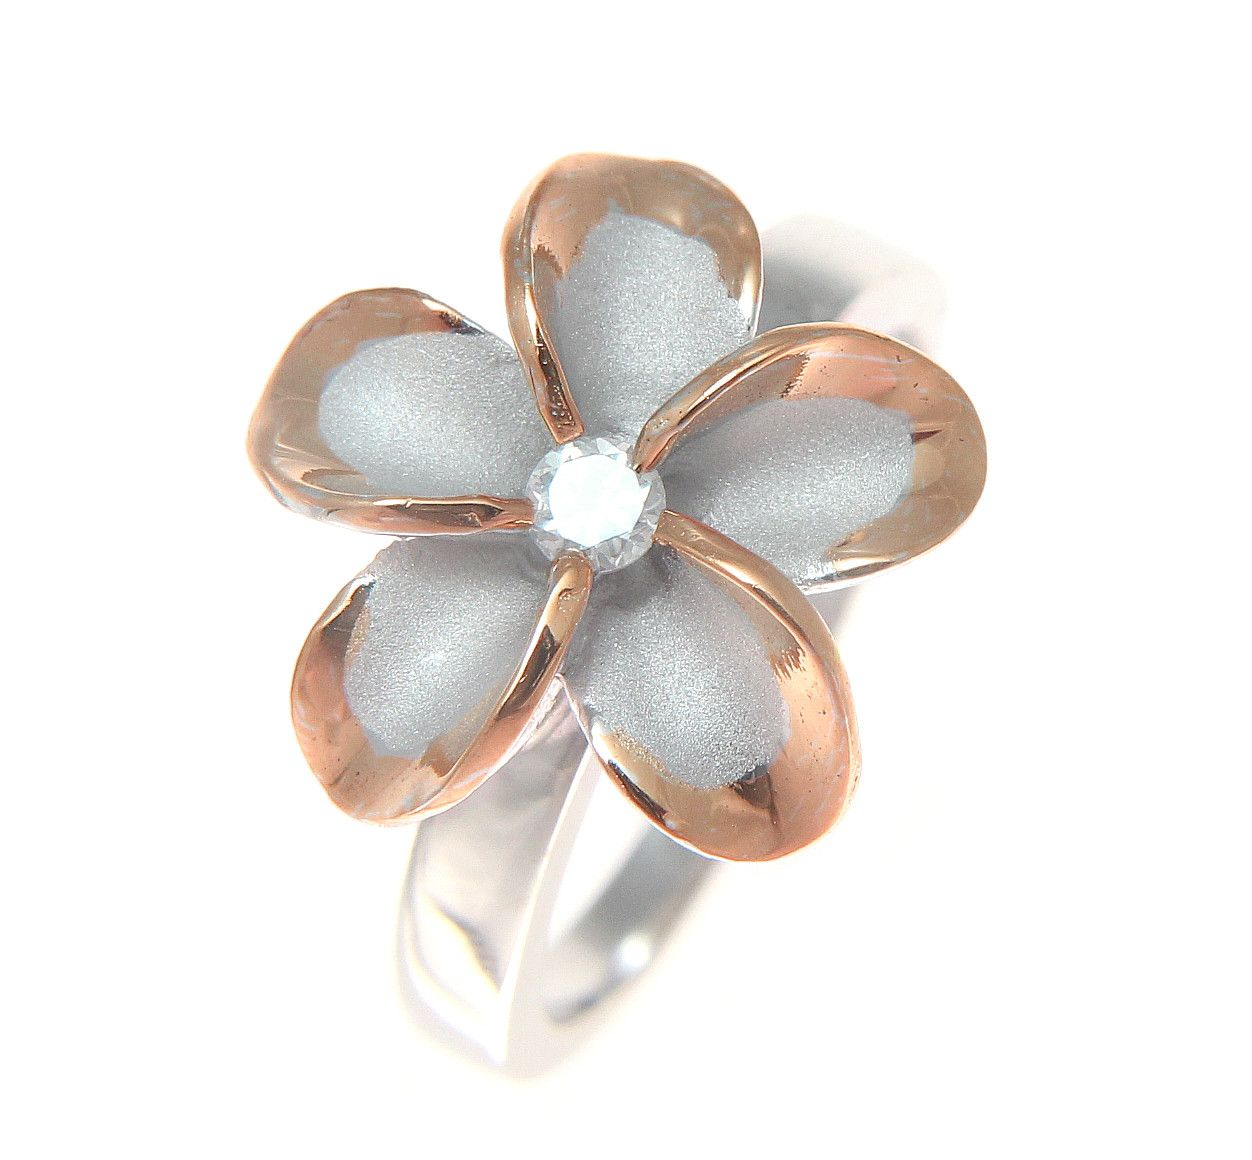 Silver 925 hawaiian plumeria flower ring 15mm cz rhodium pink rose brand new solid 925 sterling silver hawaiian single plumeria flower ring flower size 15mm approx 916 weight approx 3 grams izmirmasajfo